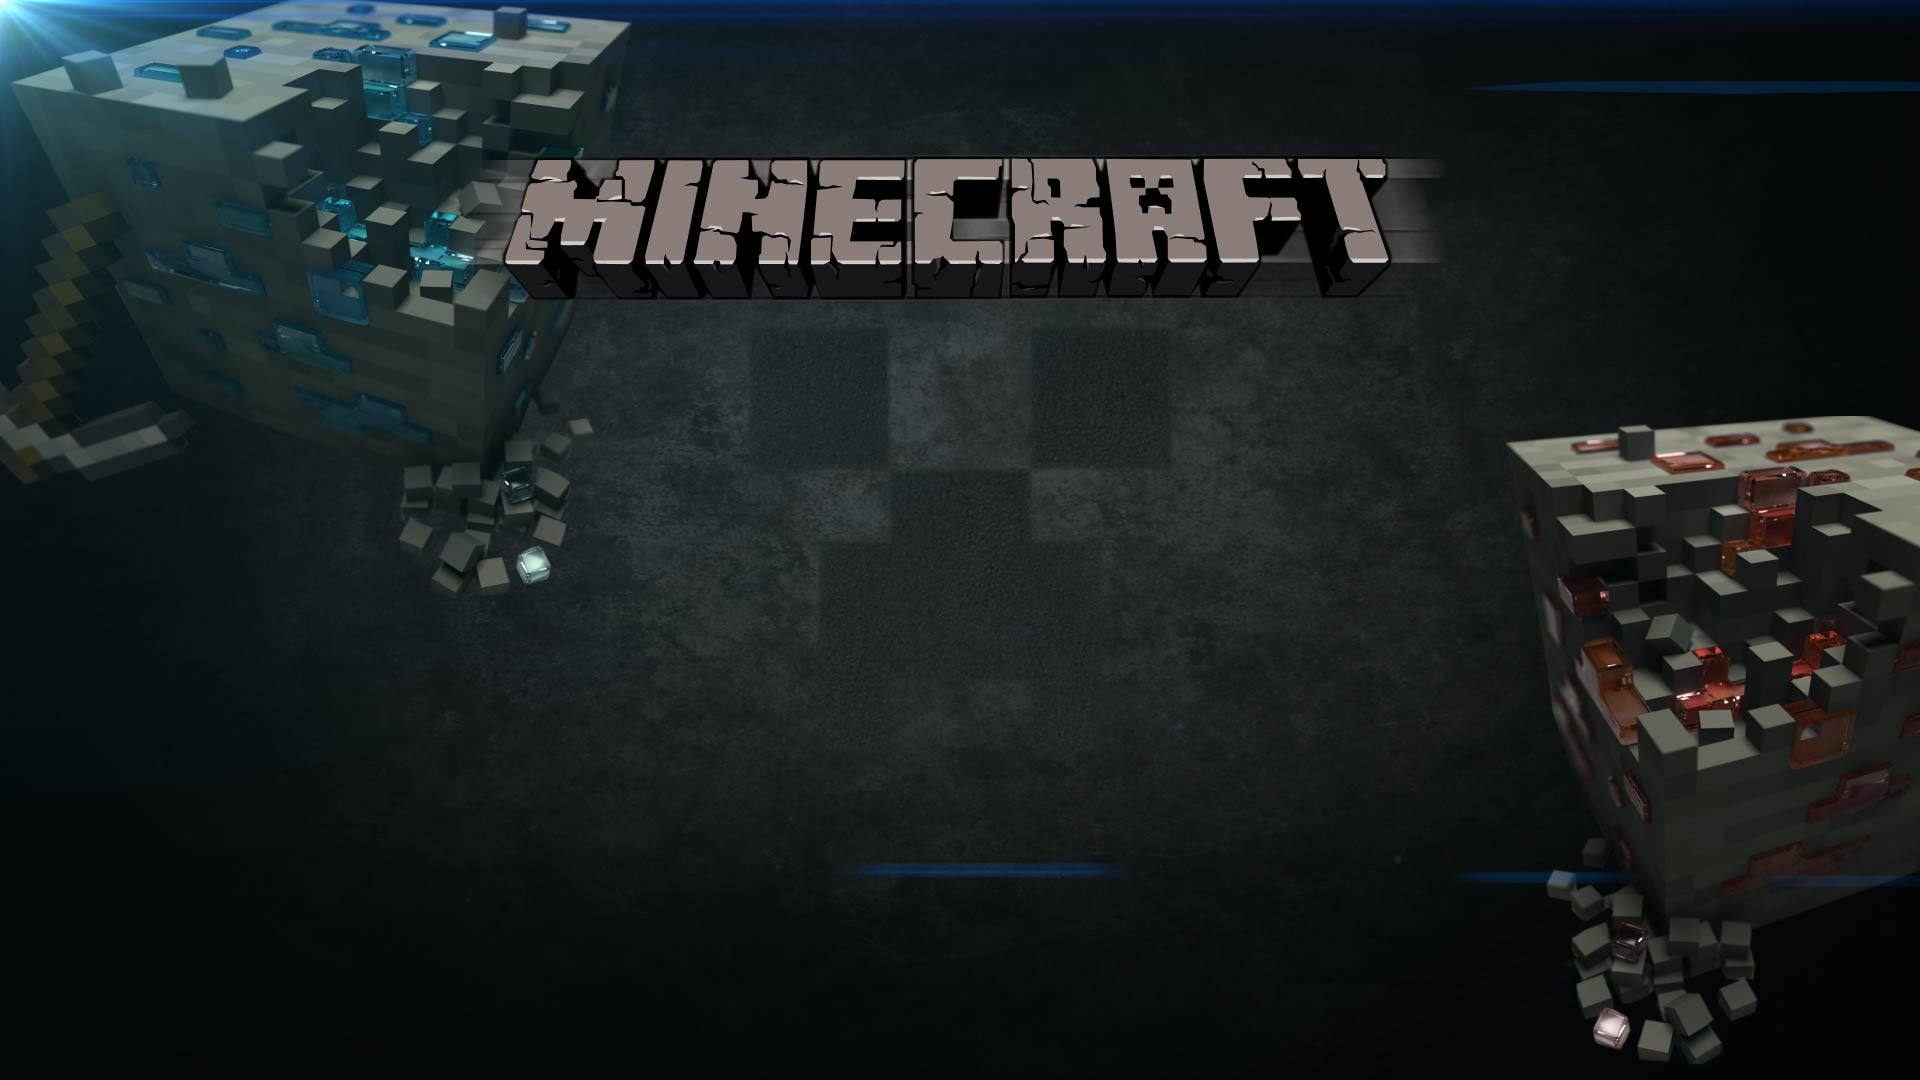 Great Wallpaper Minecraft Tablet - 696386-large-epic-minecraft-backgrounds-1920x1080  Trends_943261.jpg